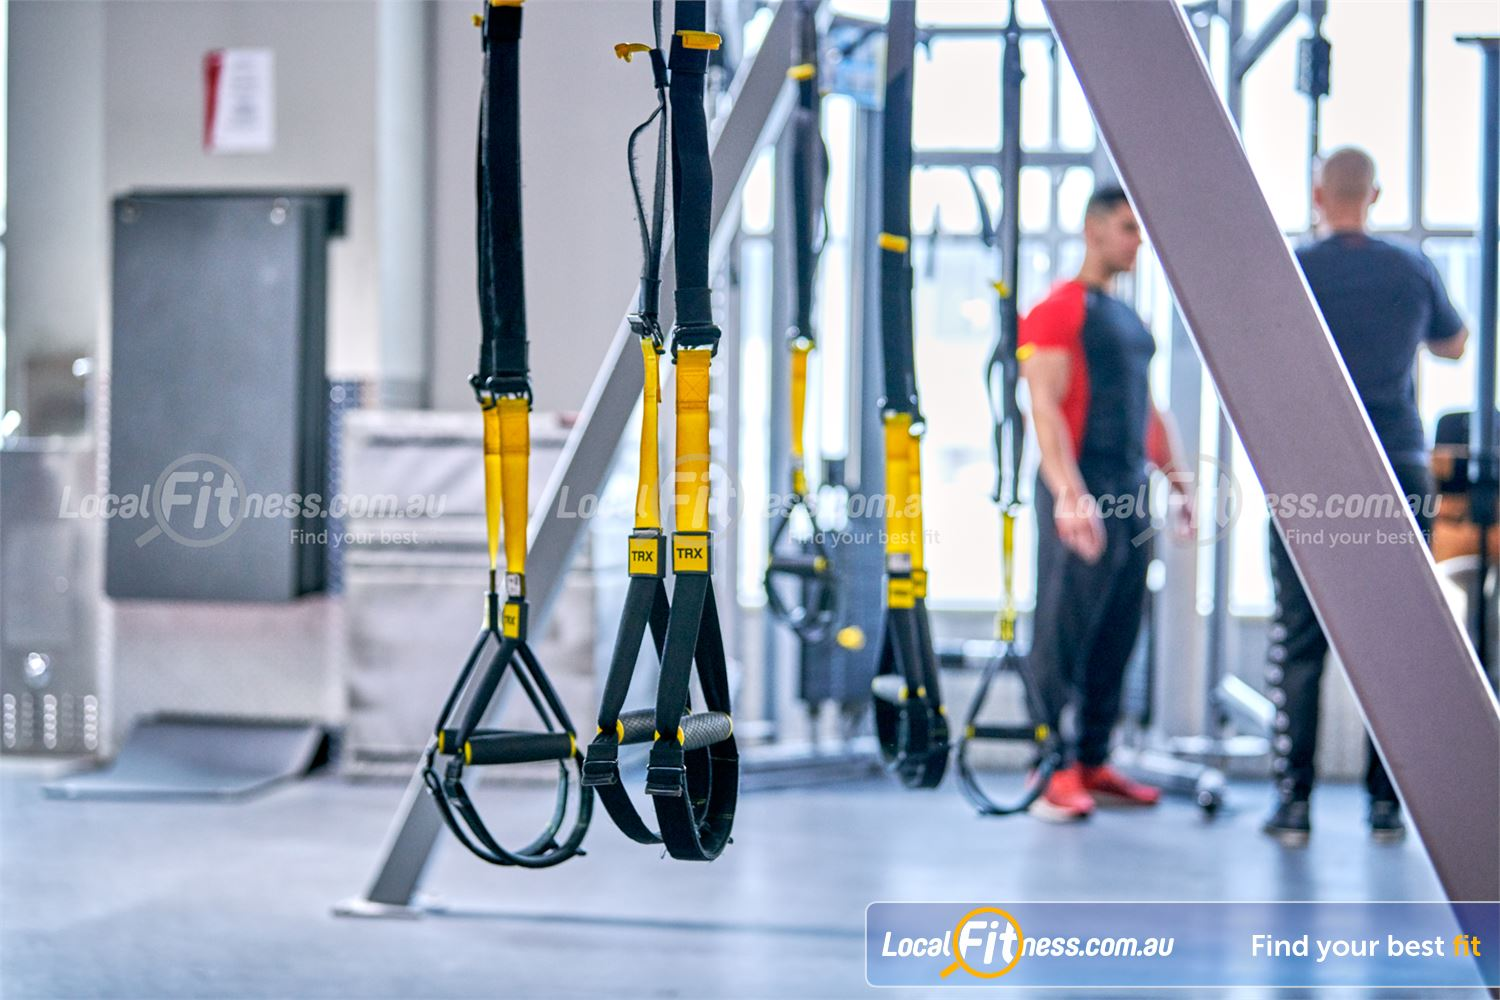 Fitness First Near Beecroft TRX training in Carlingford is a great way to improve strength, stability and your core.